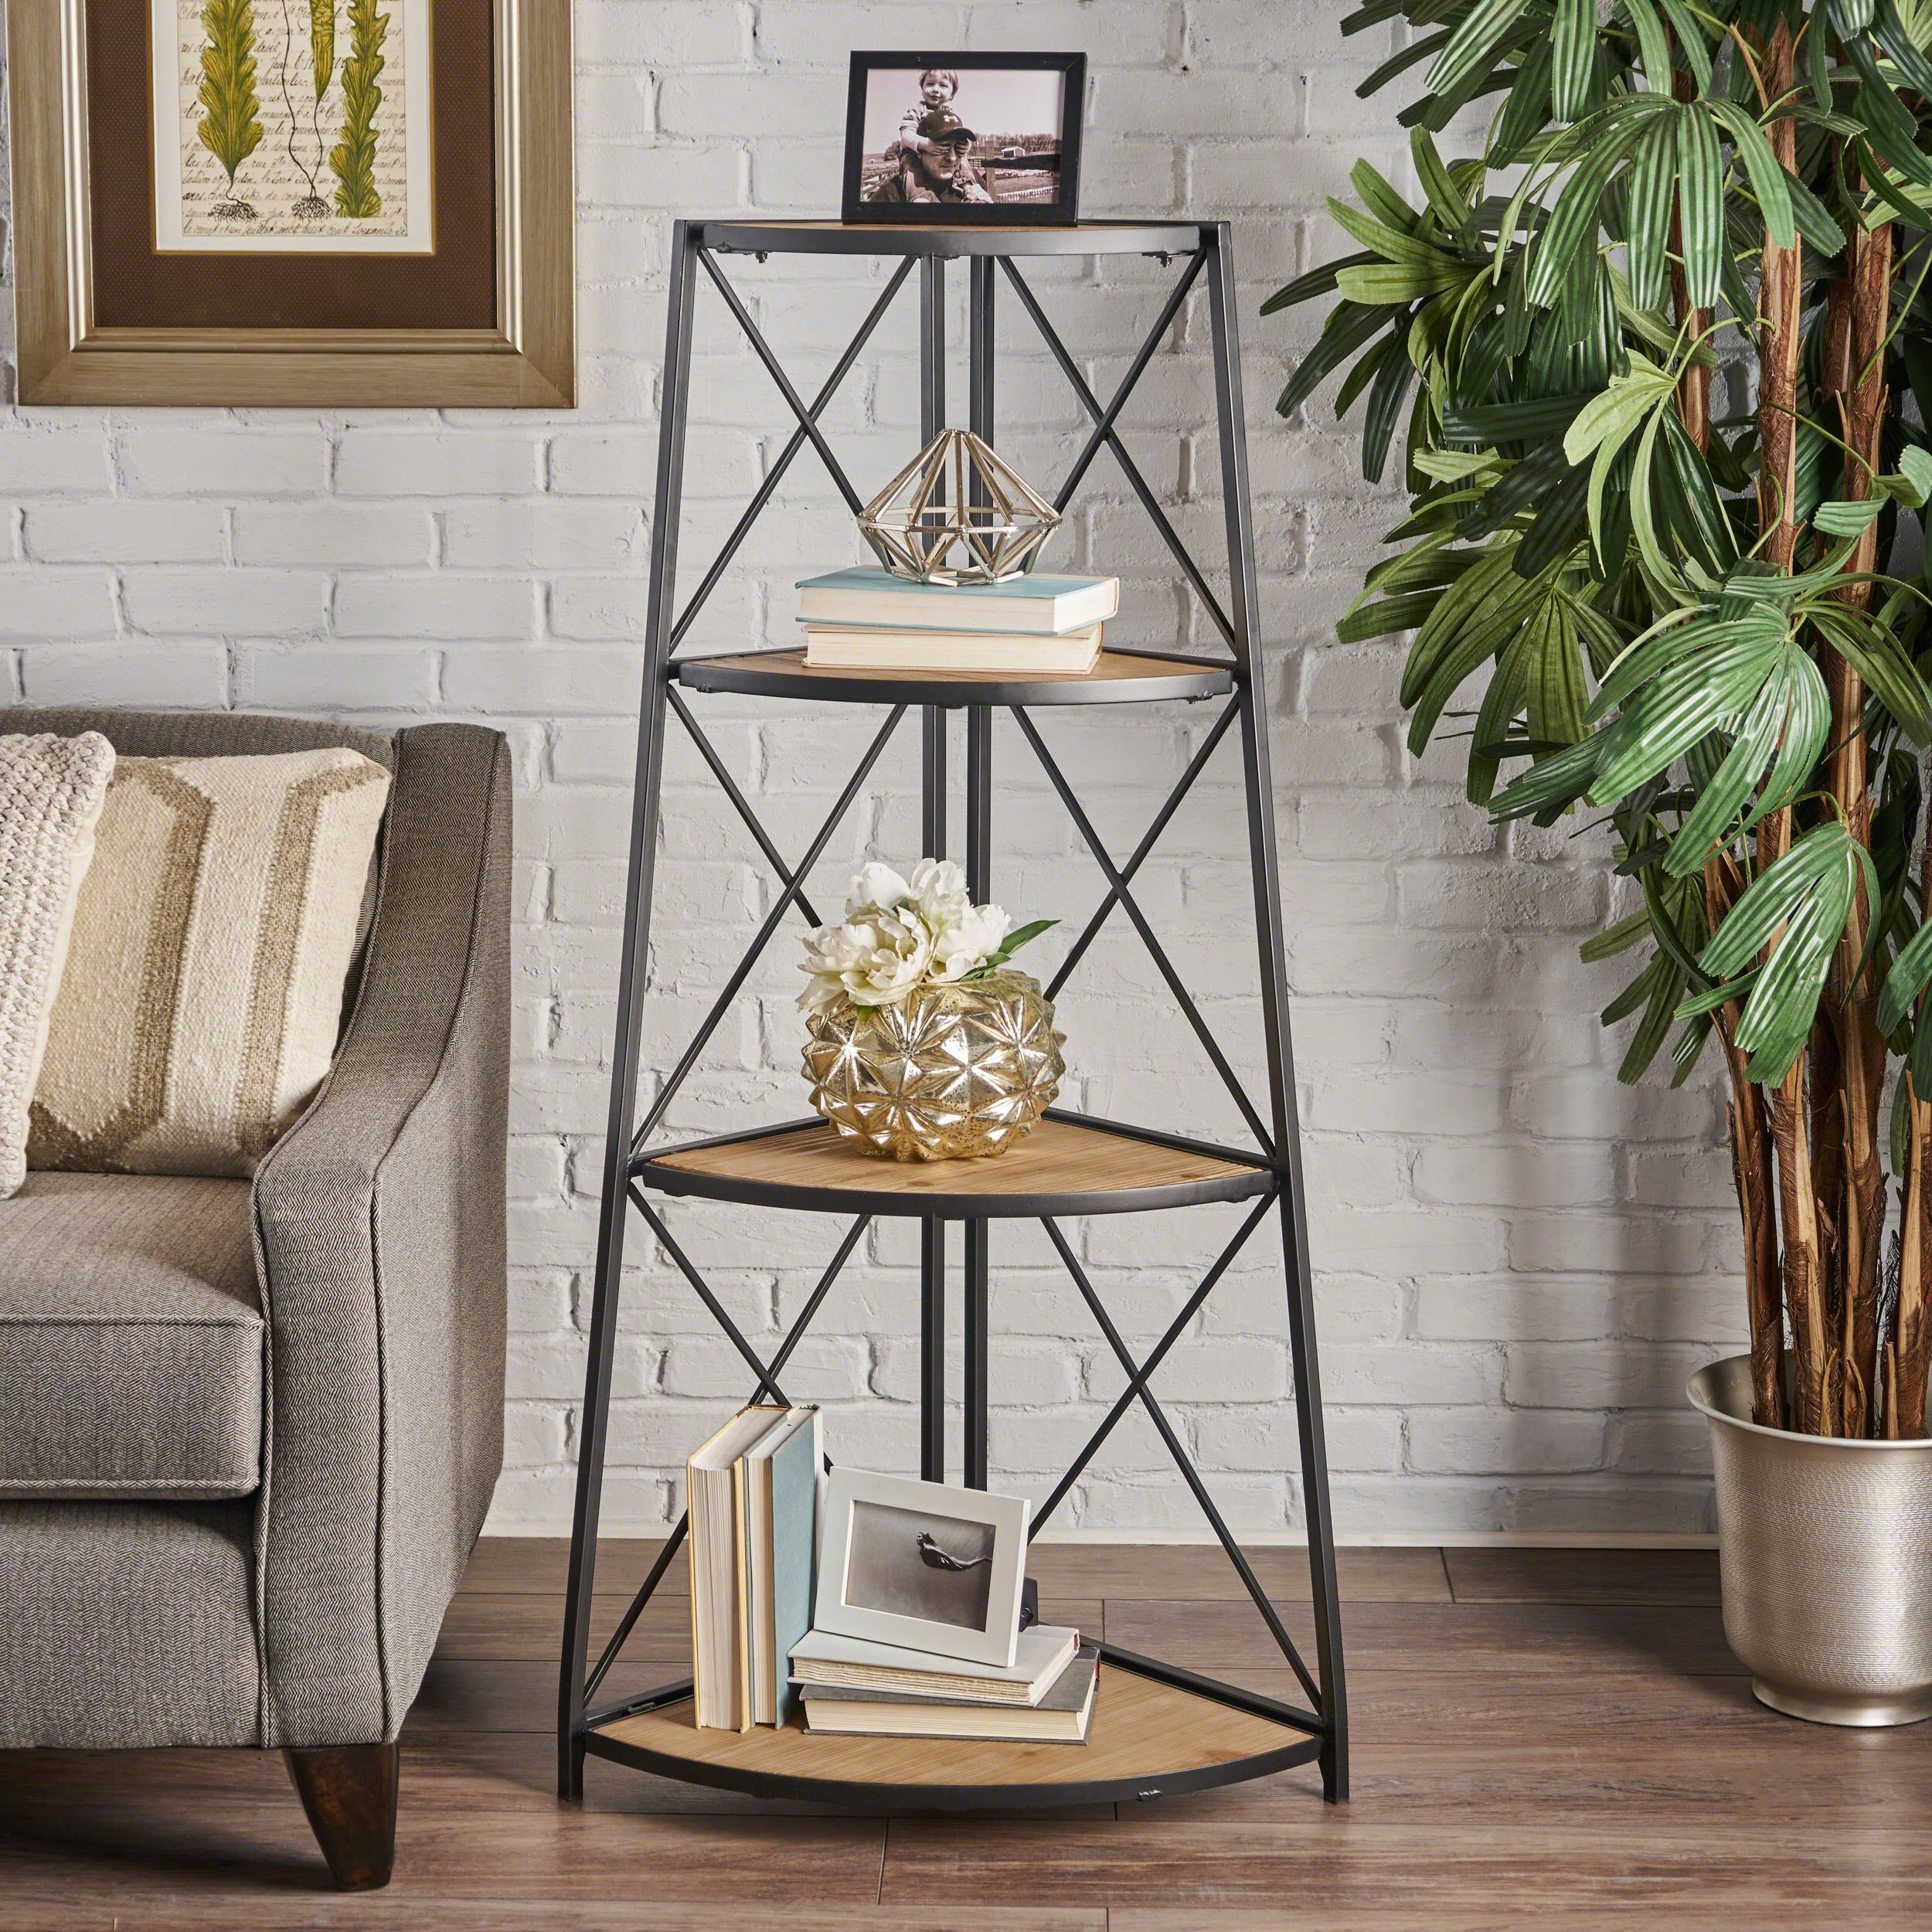 Danny Indoor Industrial Naturally Antique Firwood 3-Tier Corner Shelf with Black Finished Iron Frame by Great Deal Furniture